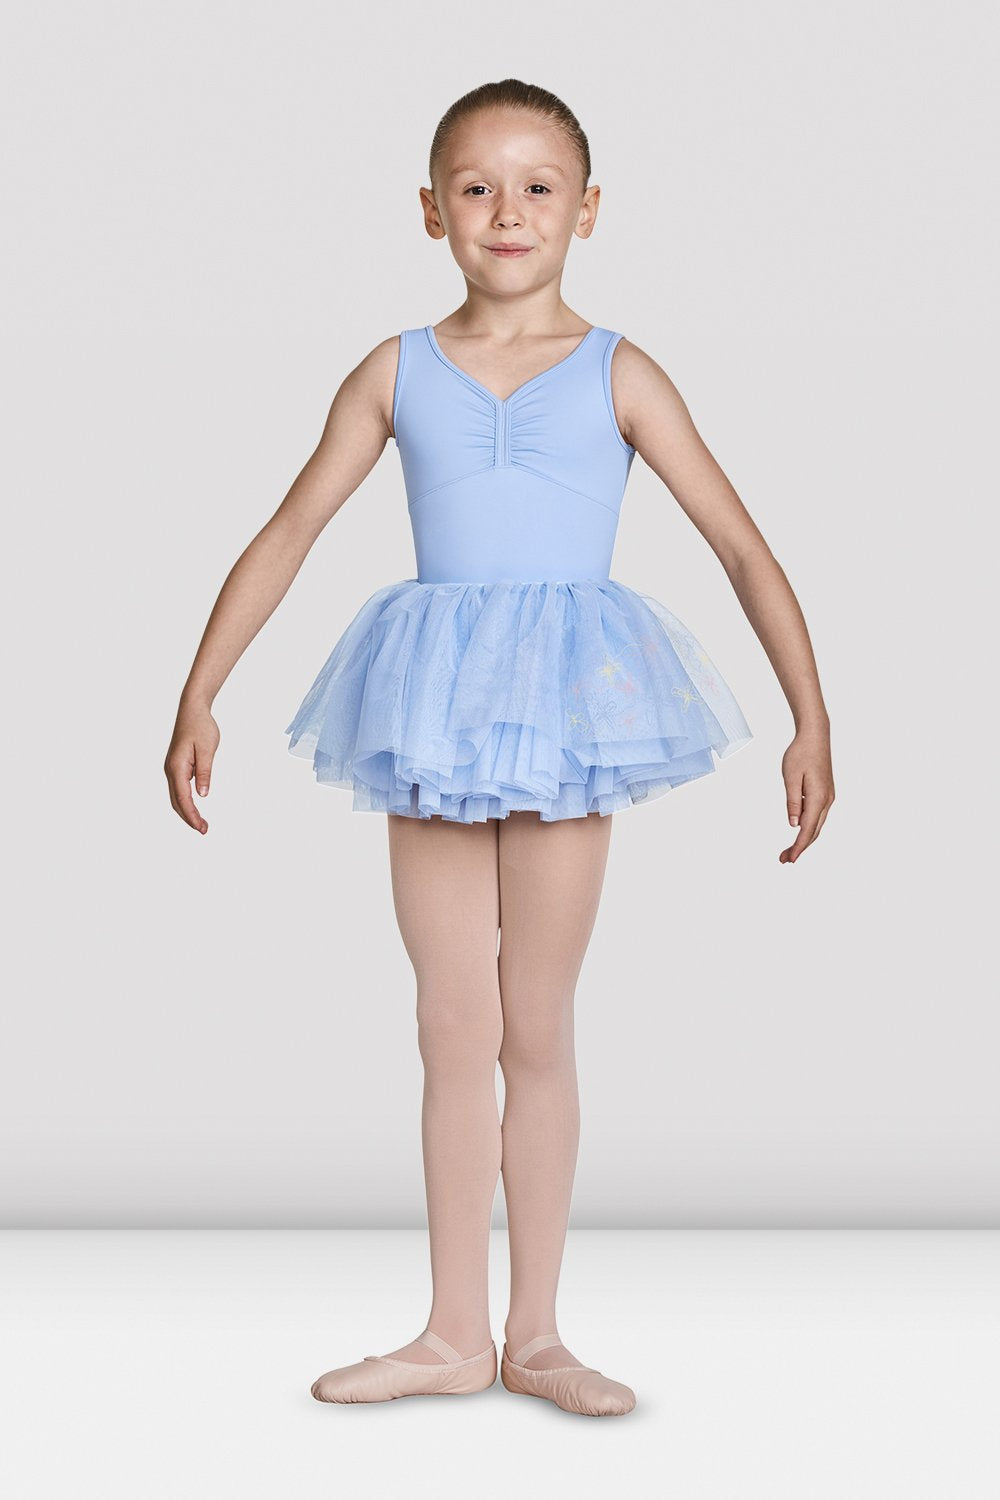 Blue Bloch Girls Soft Gathered Neckline Tank Leotard on female model feet in first position arms in demi bra